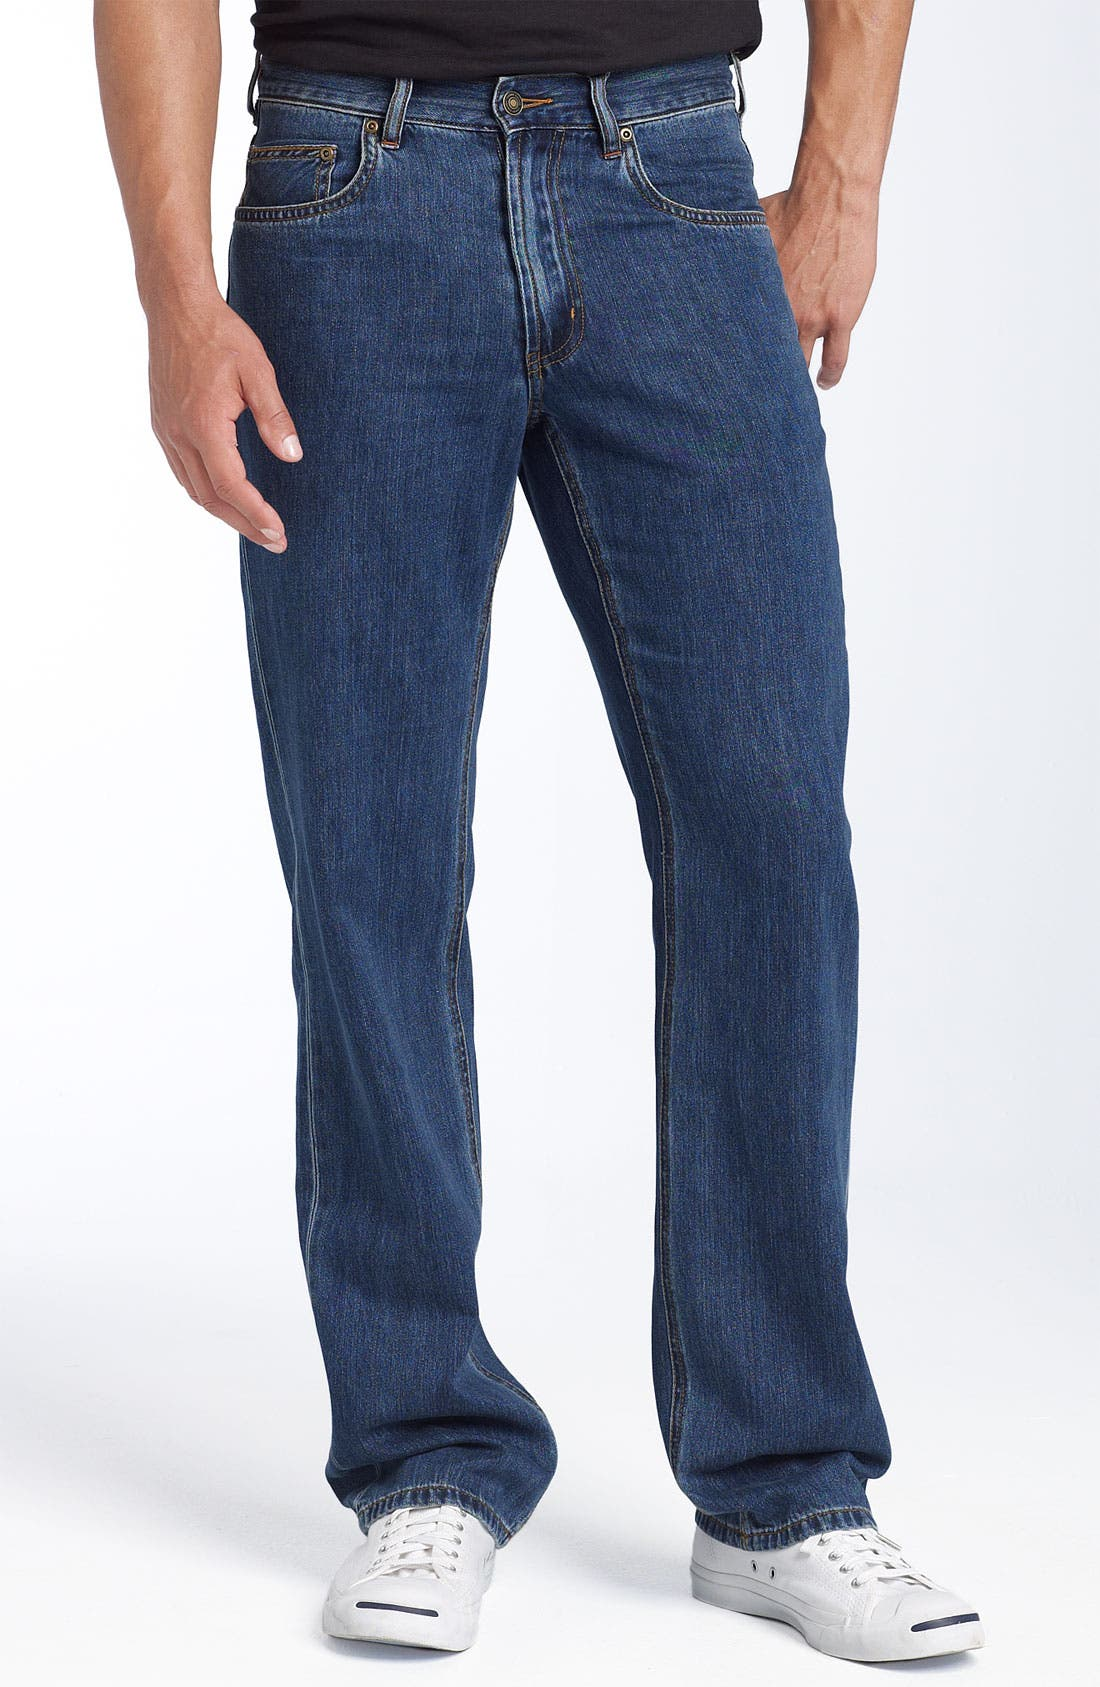 Main Image - Tommy Bahama Denim 'Island Ease' Classic Fit Jeans (Medium)